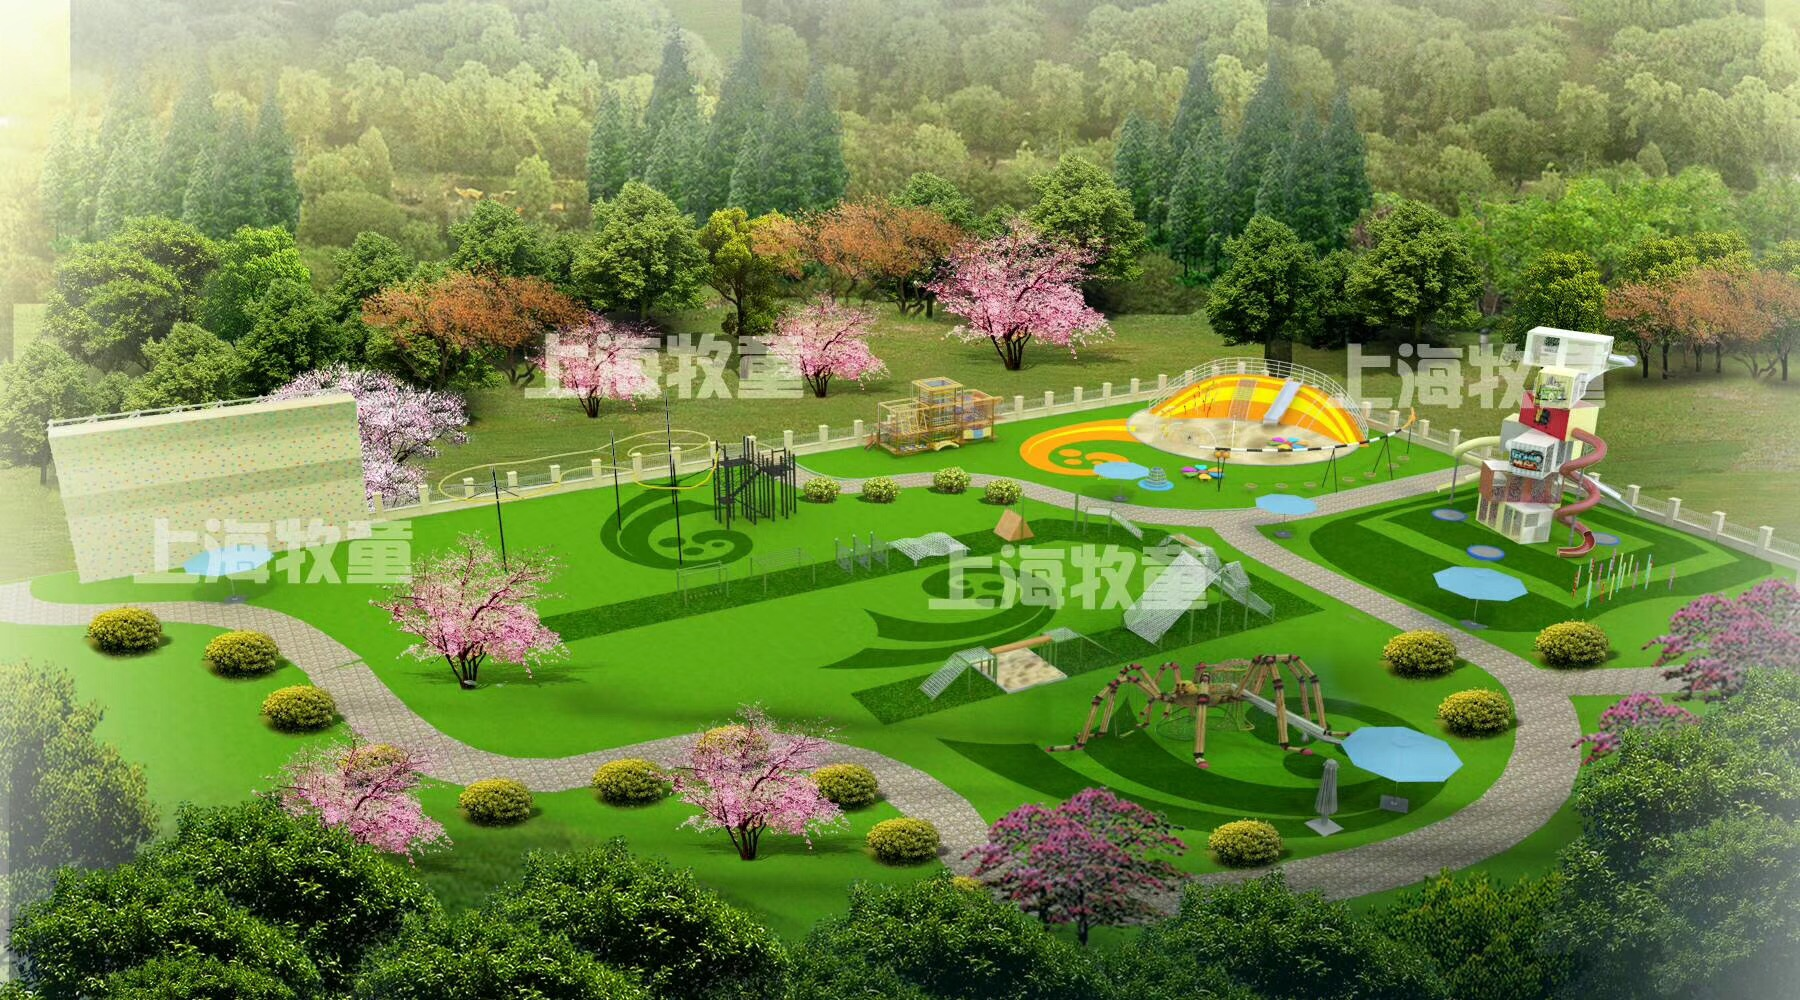 Outdoor amusement park customized design with low price Featured Image